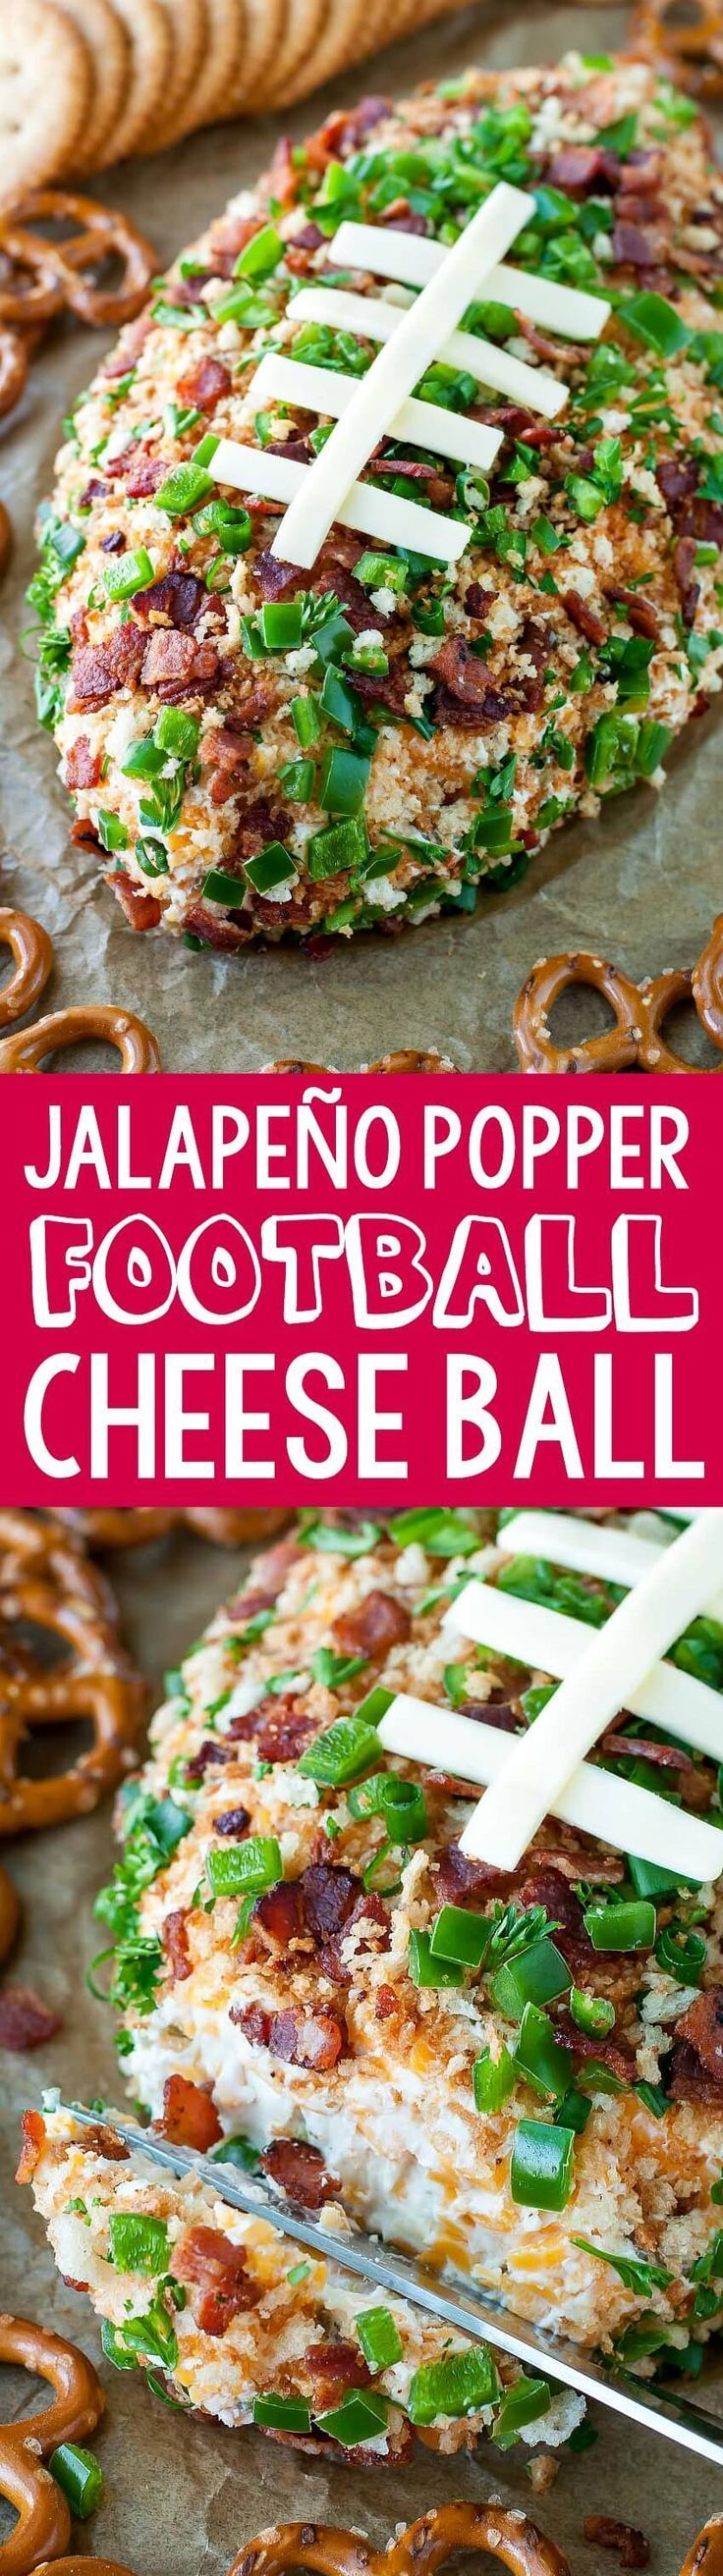 This Jalapeño Popper Football Cheese Ball is sure to make a…